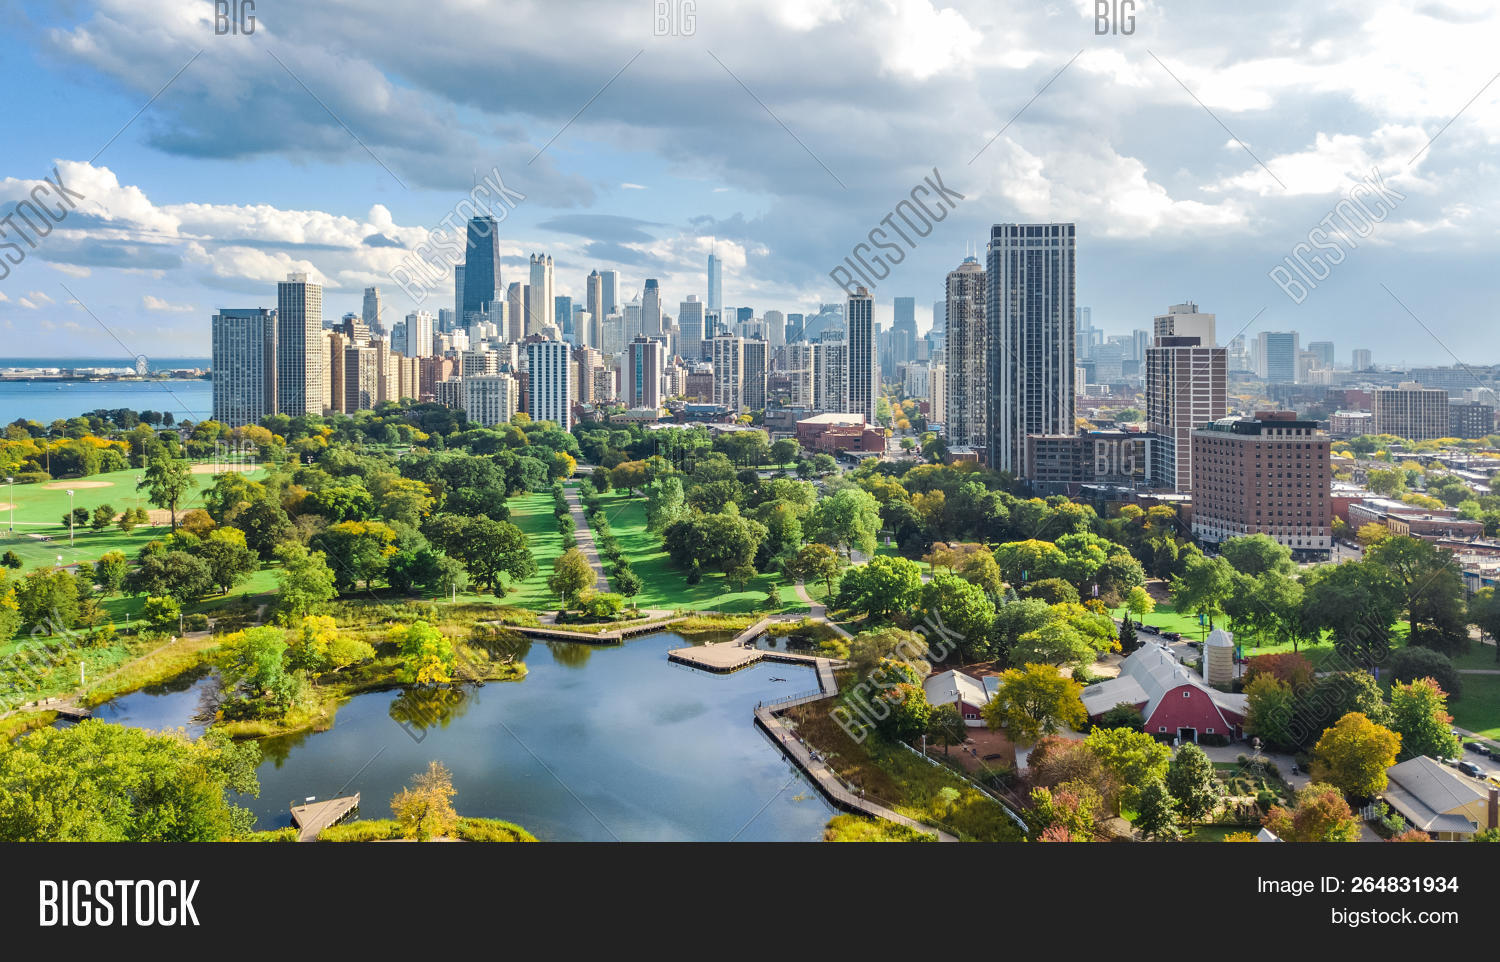 aerial,america,apartment,architecture,blue,building,chicago,city,cityscape,clouds,contemporary,day,district,downtown,green,high,hotel,illinois,lake,lakefront,landmark,lincoln,michigan,midwest,modern,nature,office,park,sky,skyline,skyscraper,steel,structure,tall,tower,travel,trees,united,urban,usa,view,water